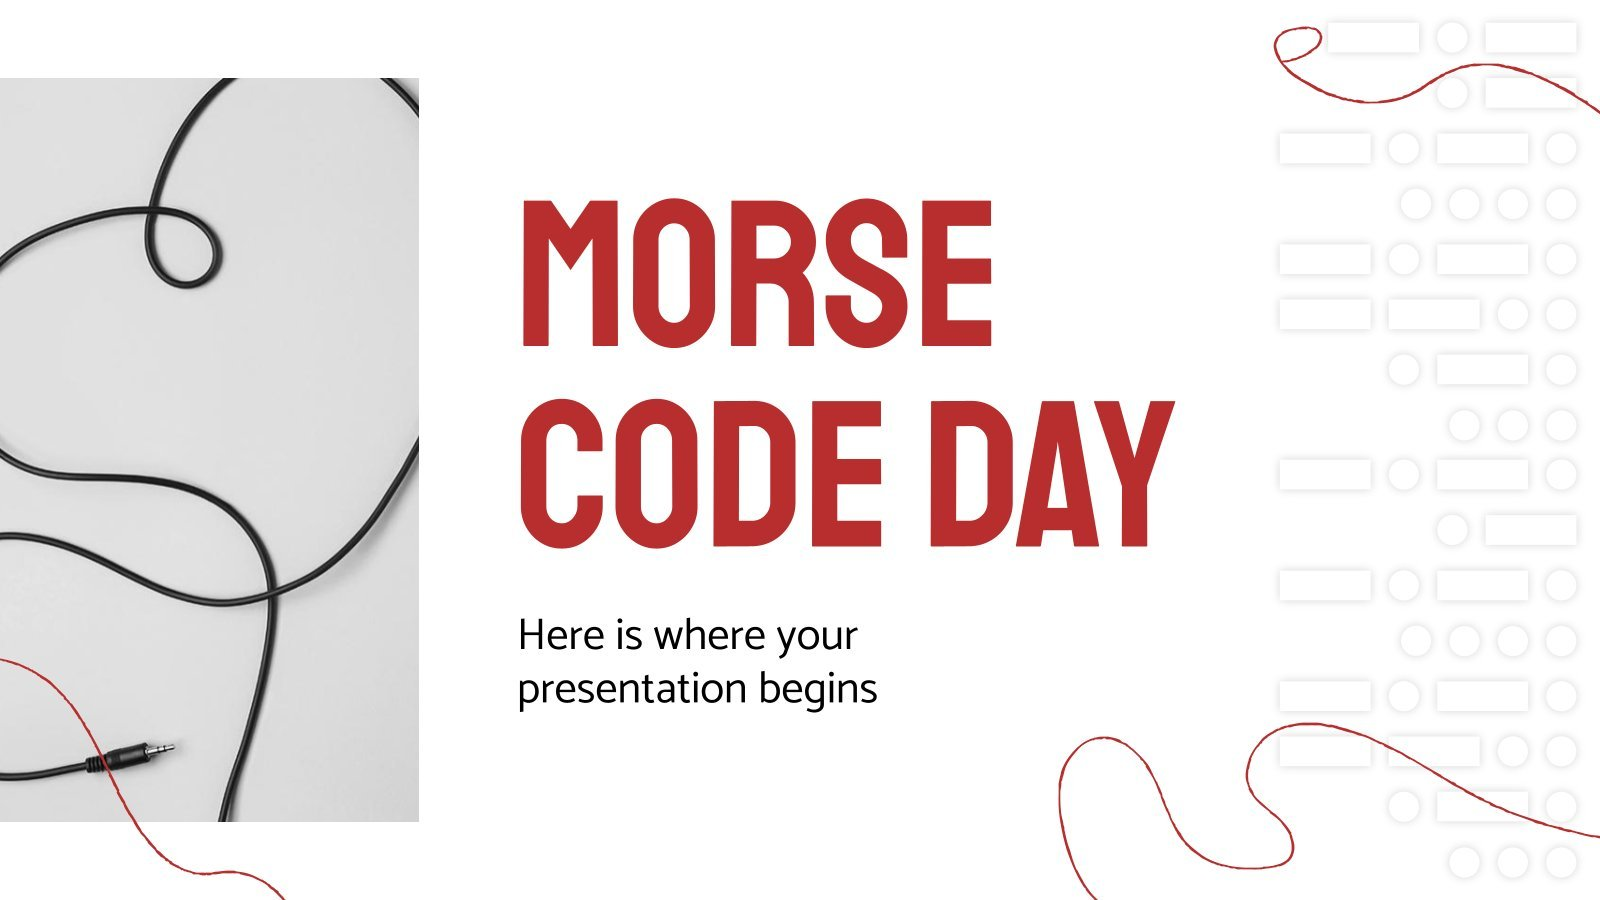 Morse Code Day presentation template